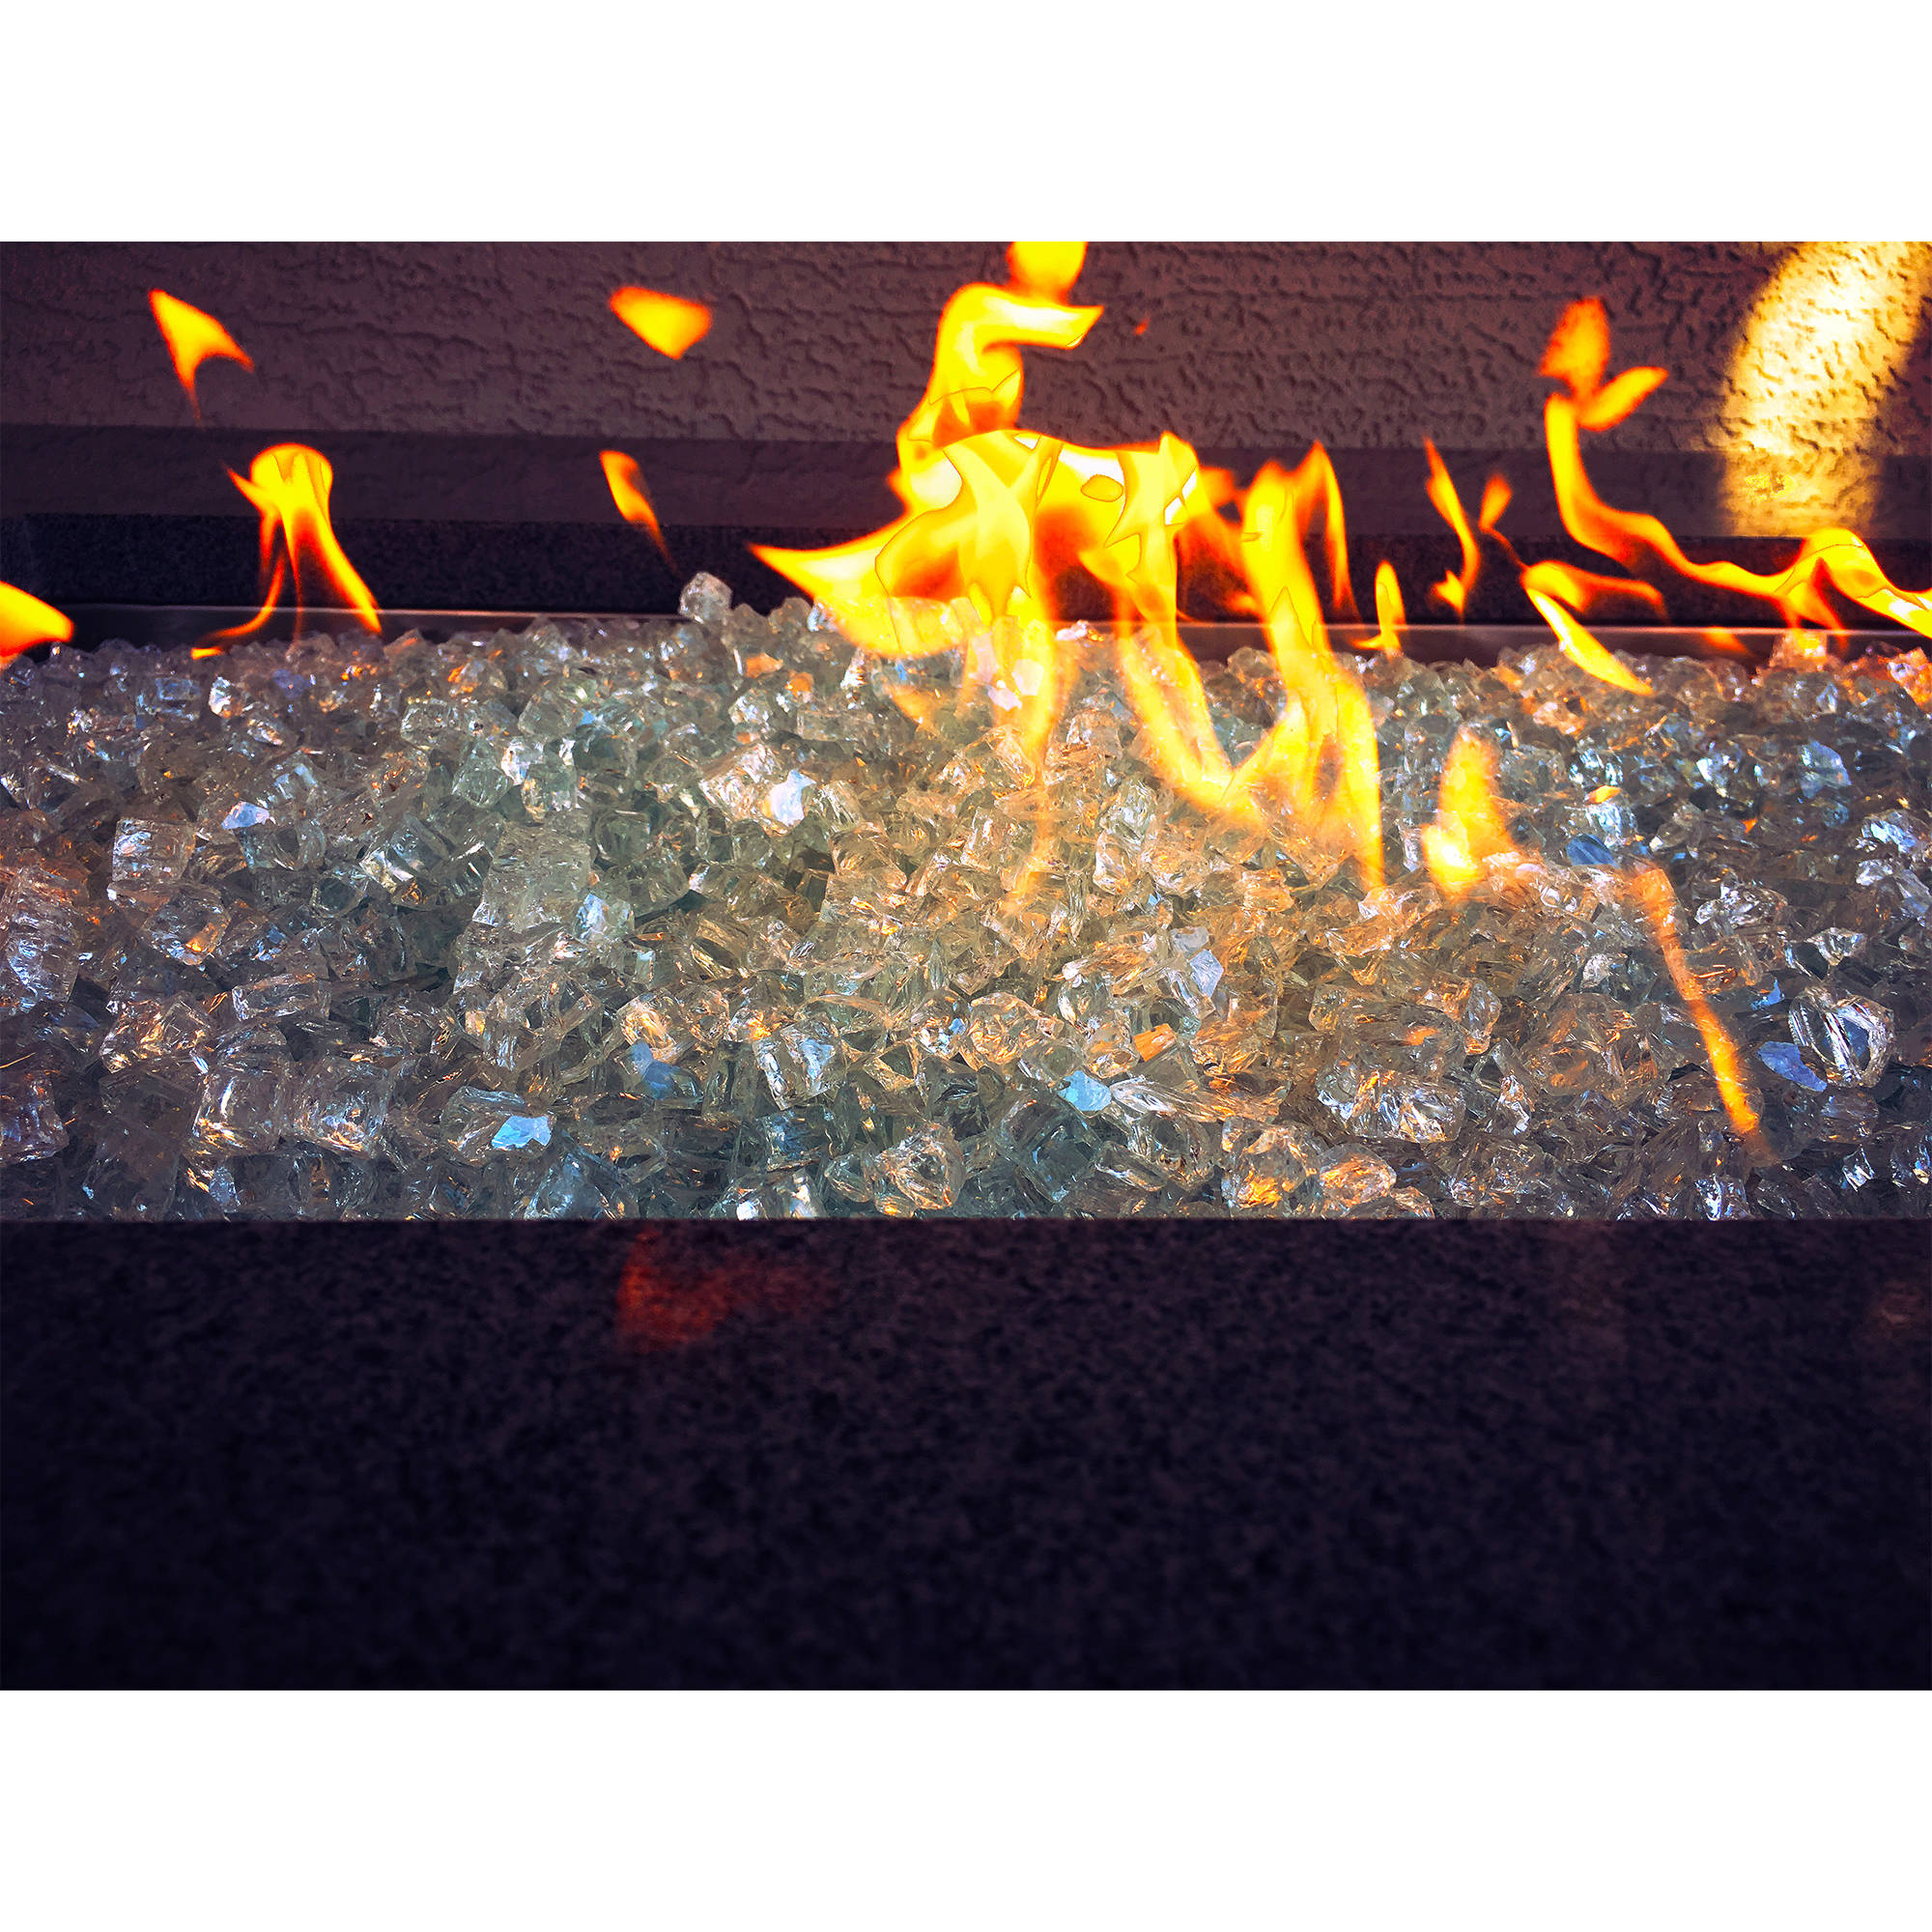 "Element Aquamarine 1/2"" Large Fire Pit Glass"